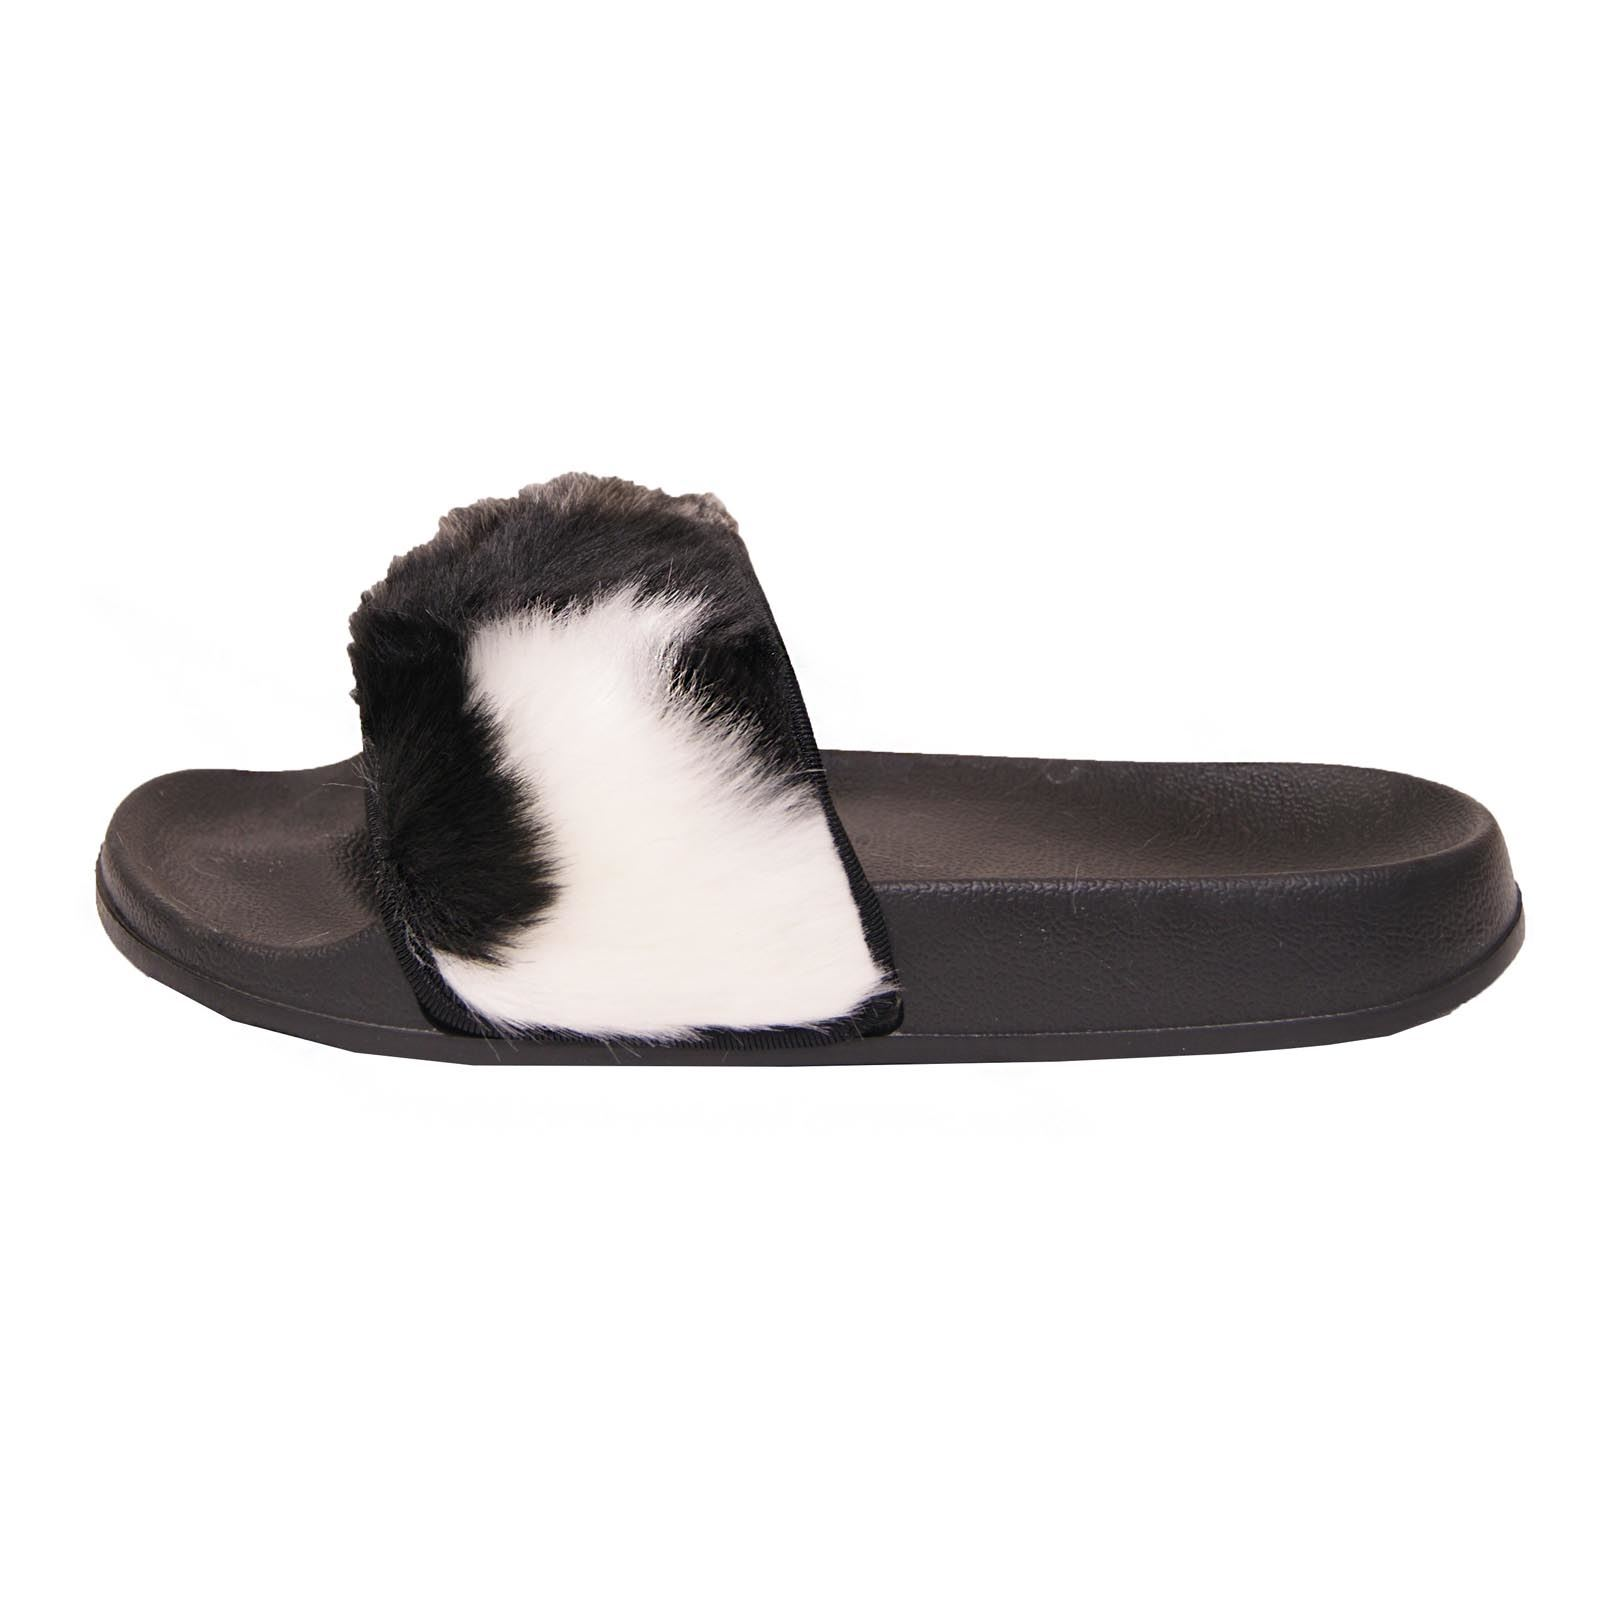 Womens Slip On Flat Farrah Rubber Slider Mules Fur Slipper Sandals Shoe